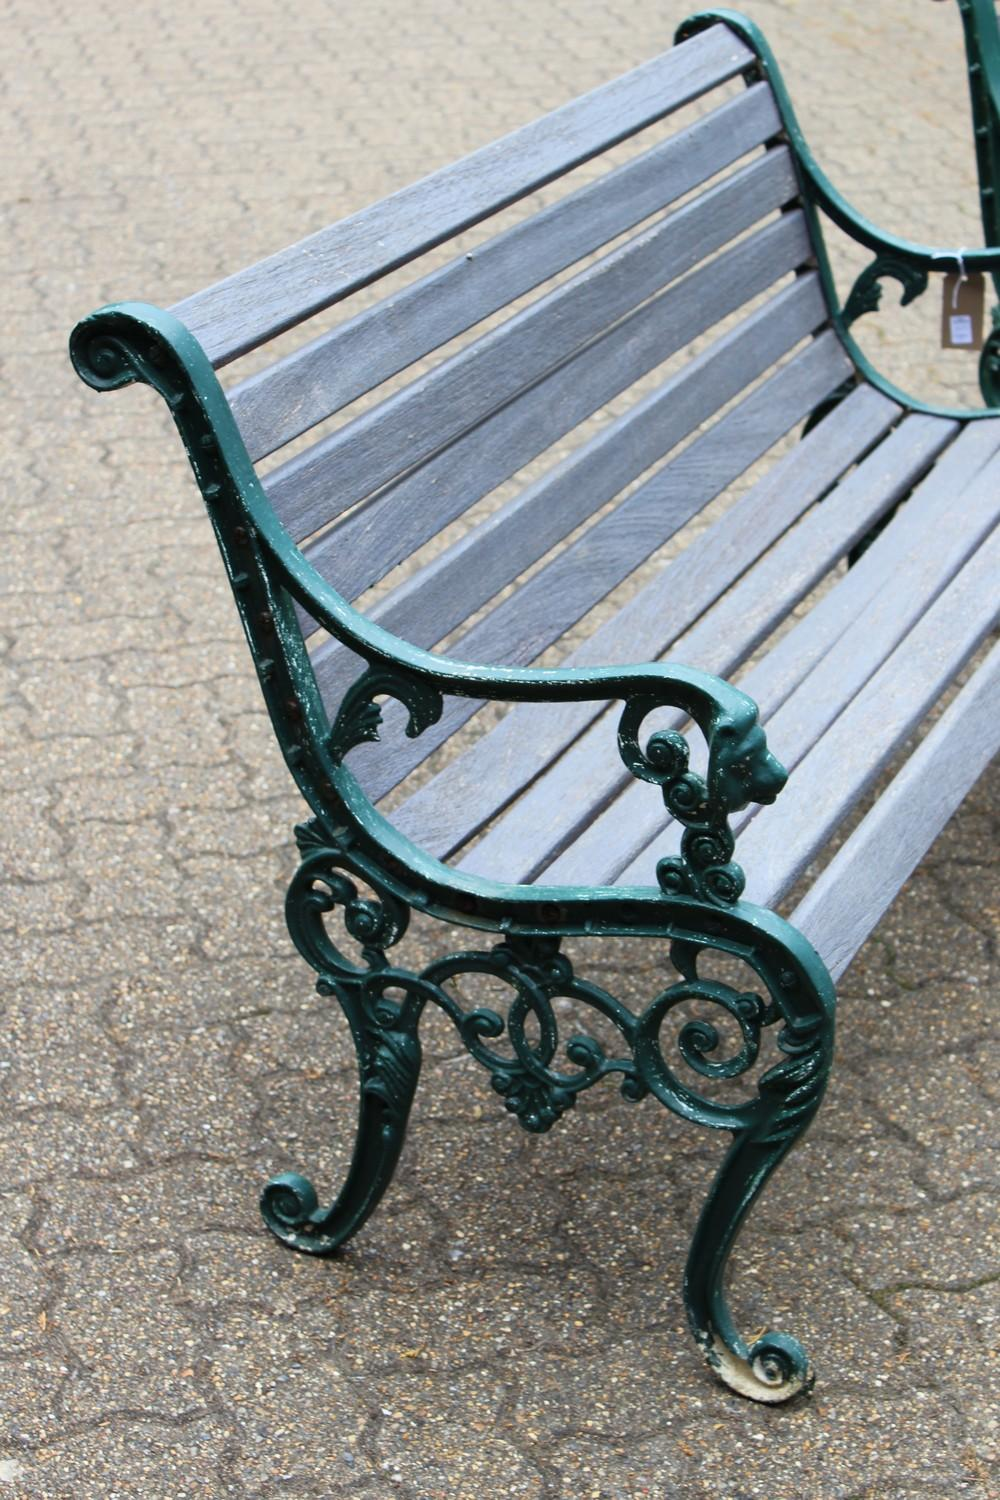 Sold Price A Pair Of Victorian Style Garden Benches Each With Ornate Cast Metal Ends And Wooden Slats Together With The June 4 0120 10 30 Am Bst